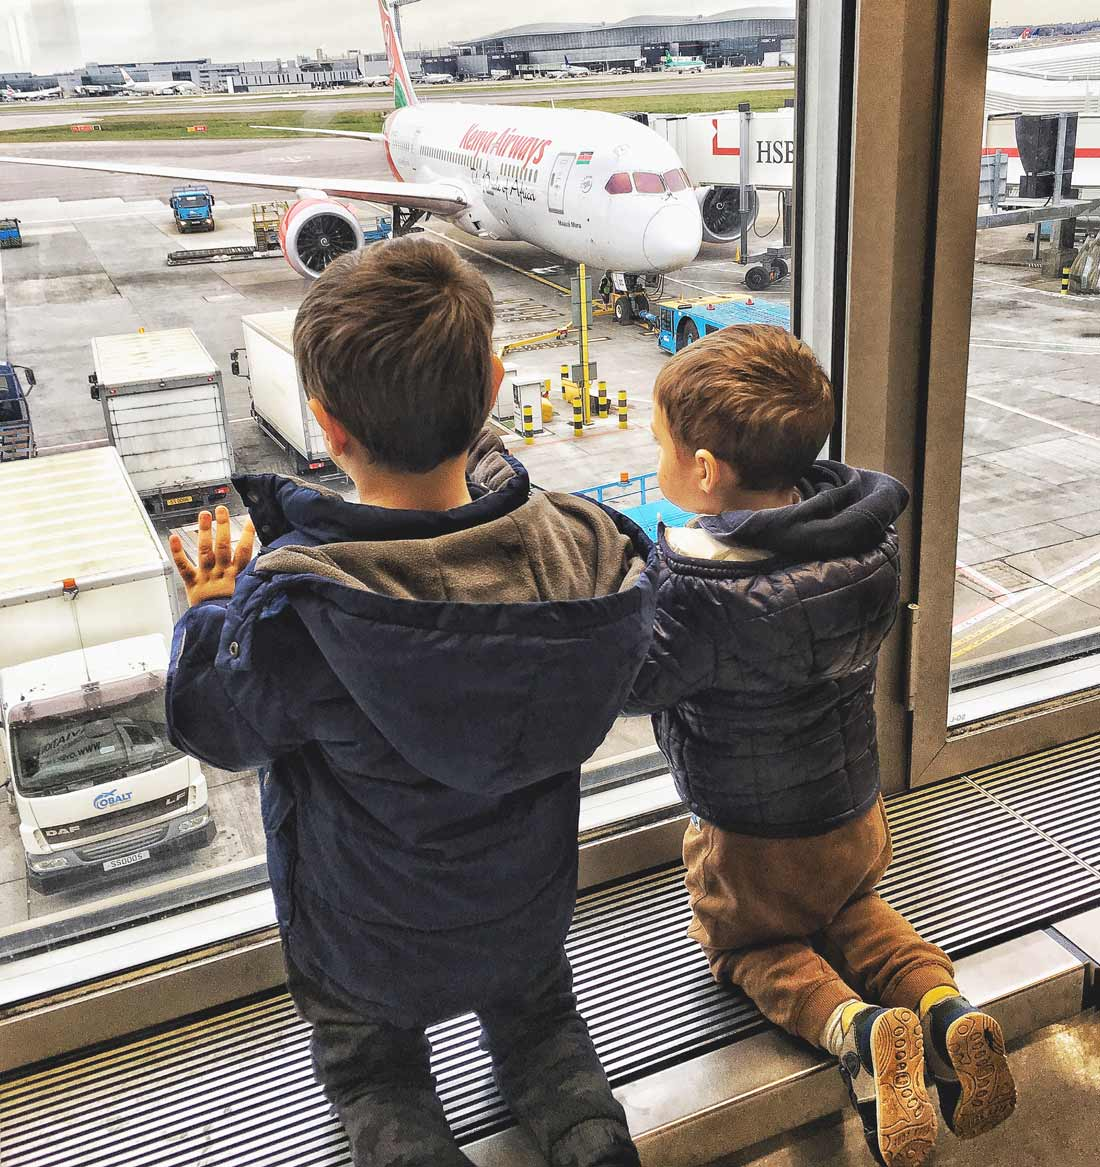 Strategies and tips how to enjoy Air travel with kids